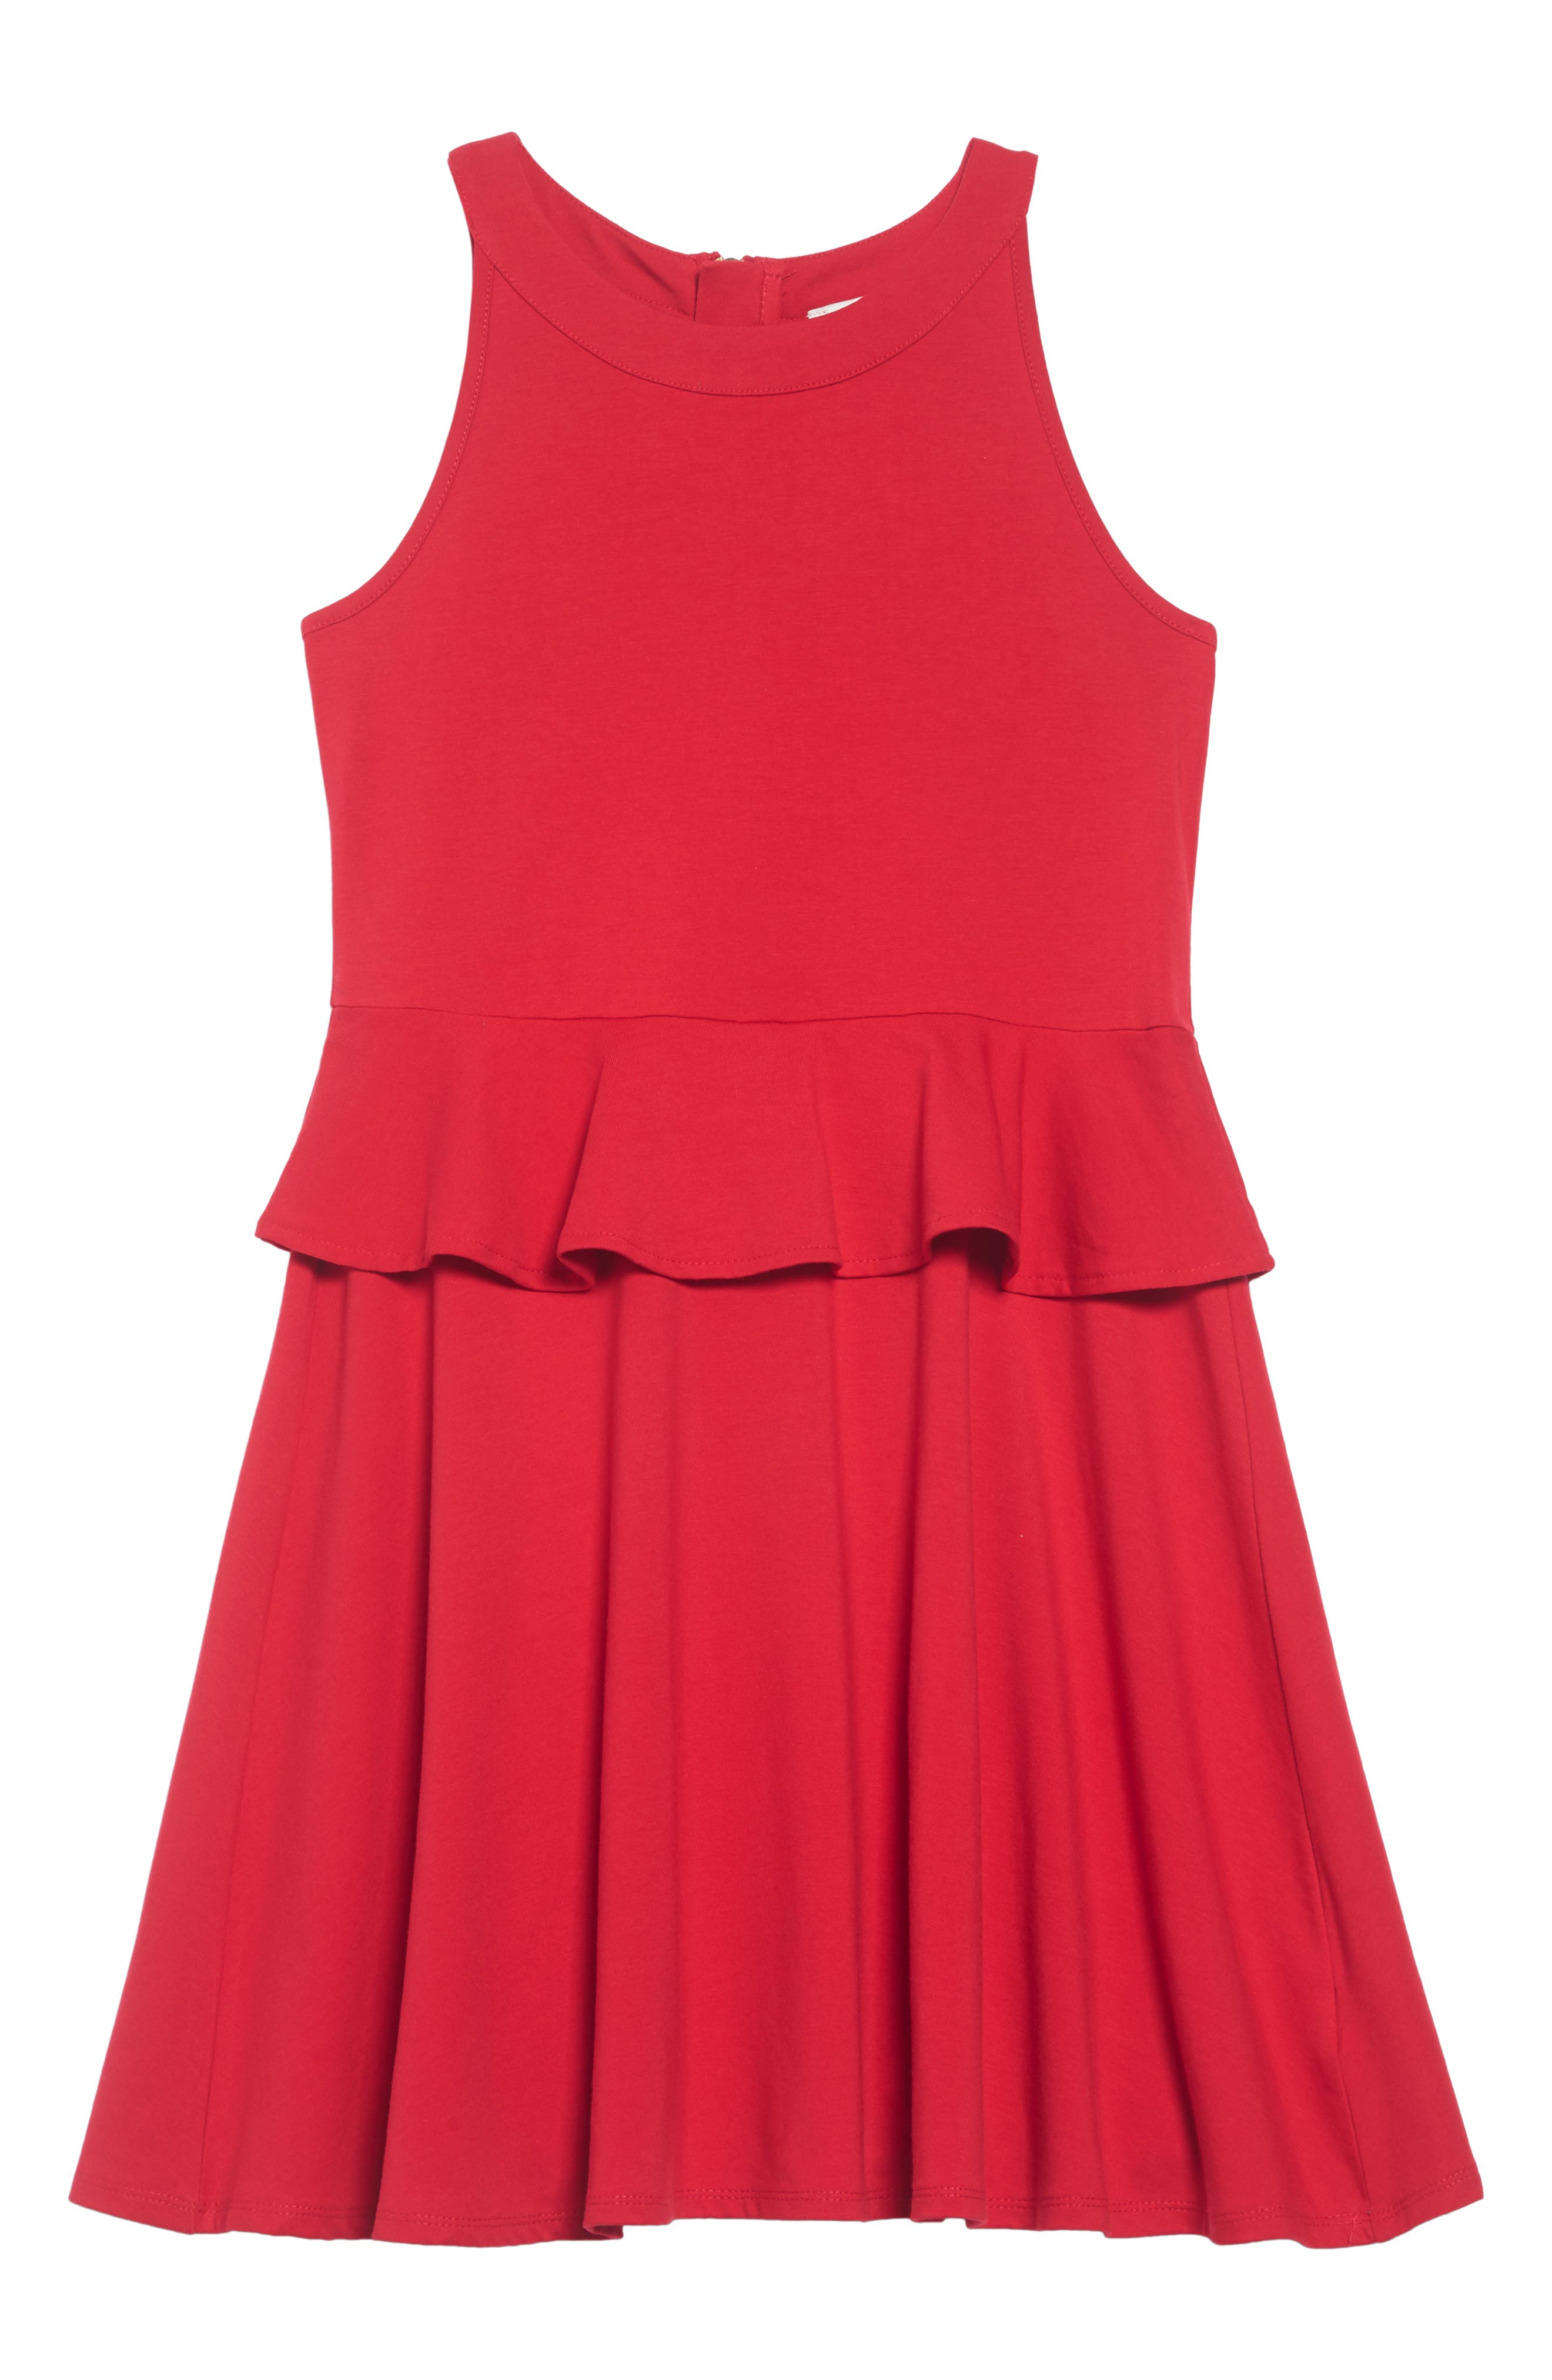 peplum dress,                         Main,                         color, CHARM RED